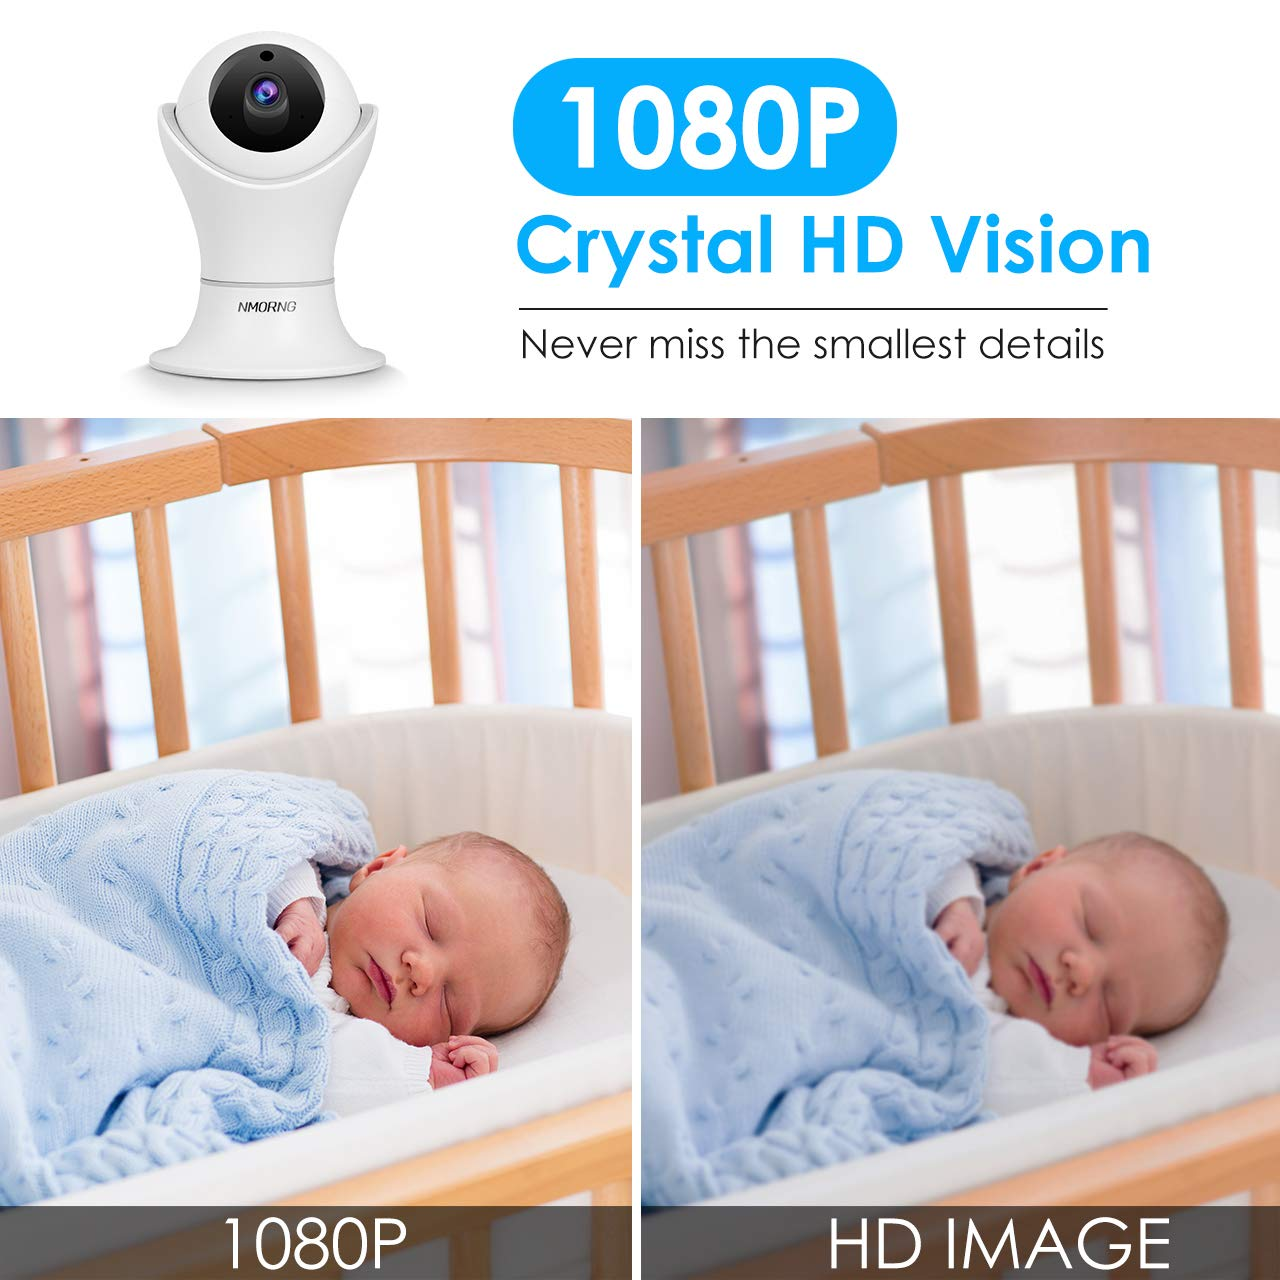 Pet Camera, 1080P Home Security Camera with Night Vision, Two-Way Audio, WIFI IP Camera for Baby Monitor, Auto-Cruise Baby Camera, Remote Control by App Indoor Camera, Cloud Storage by NMORNG (Image #6)